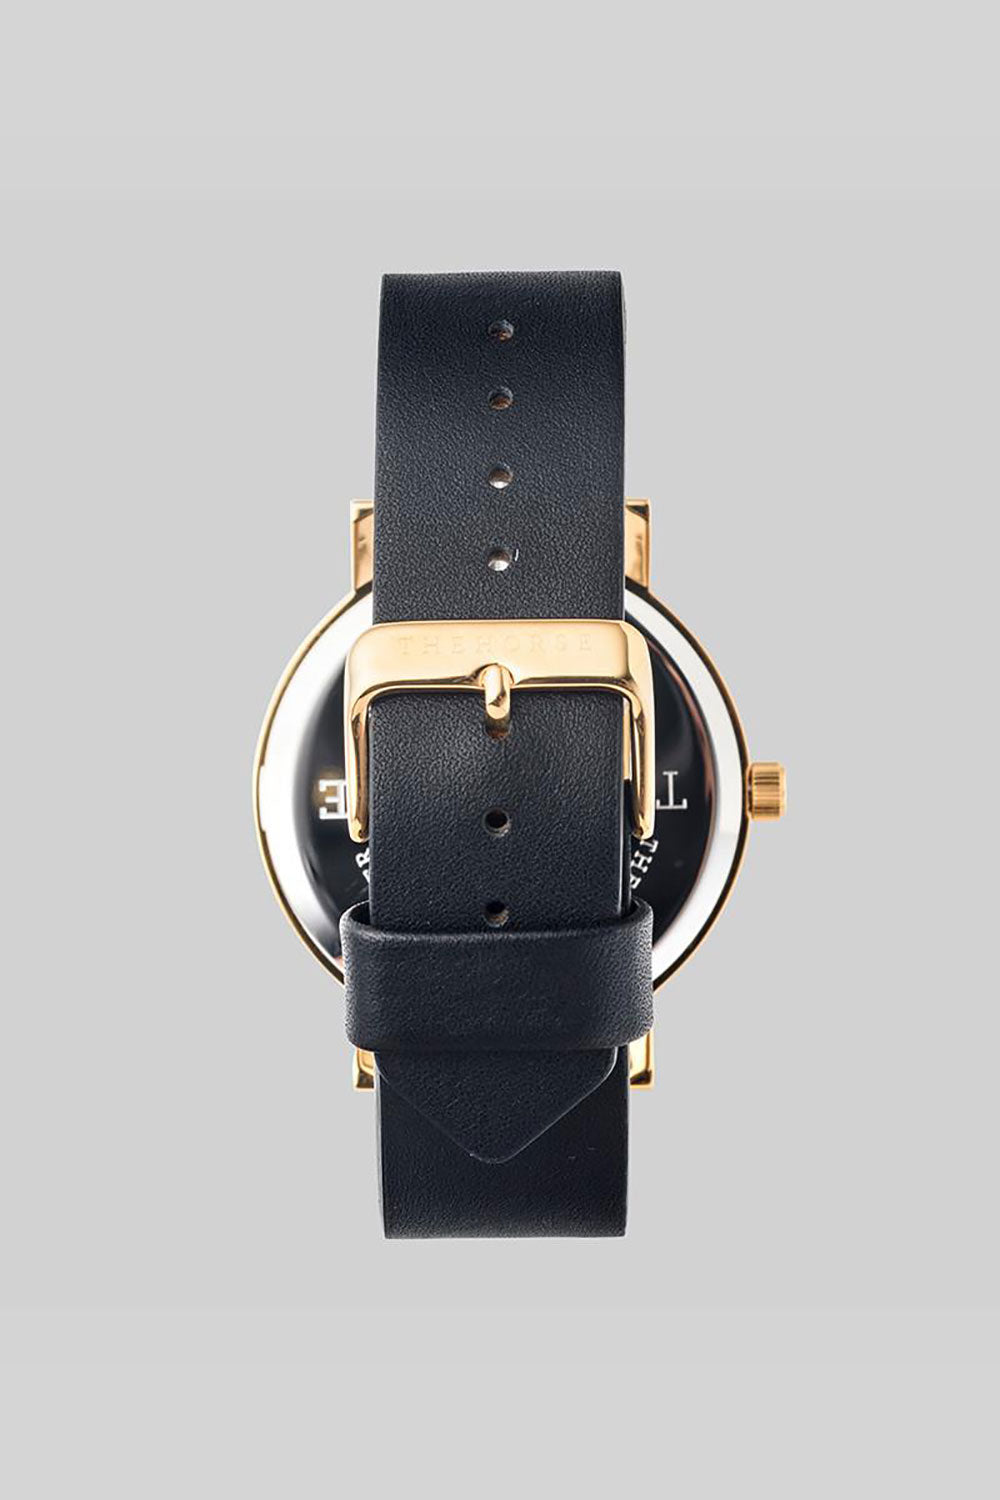 THE ORIGINAL - POLISHED GOLD, WHITE DIAL, BLACK LEATHER